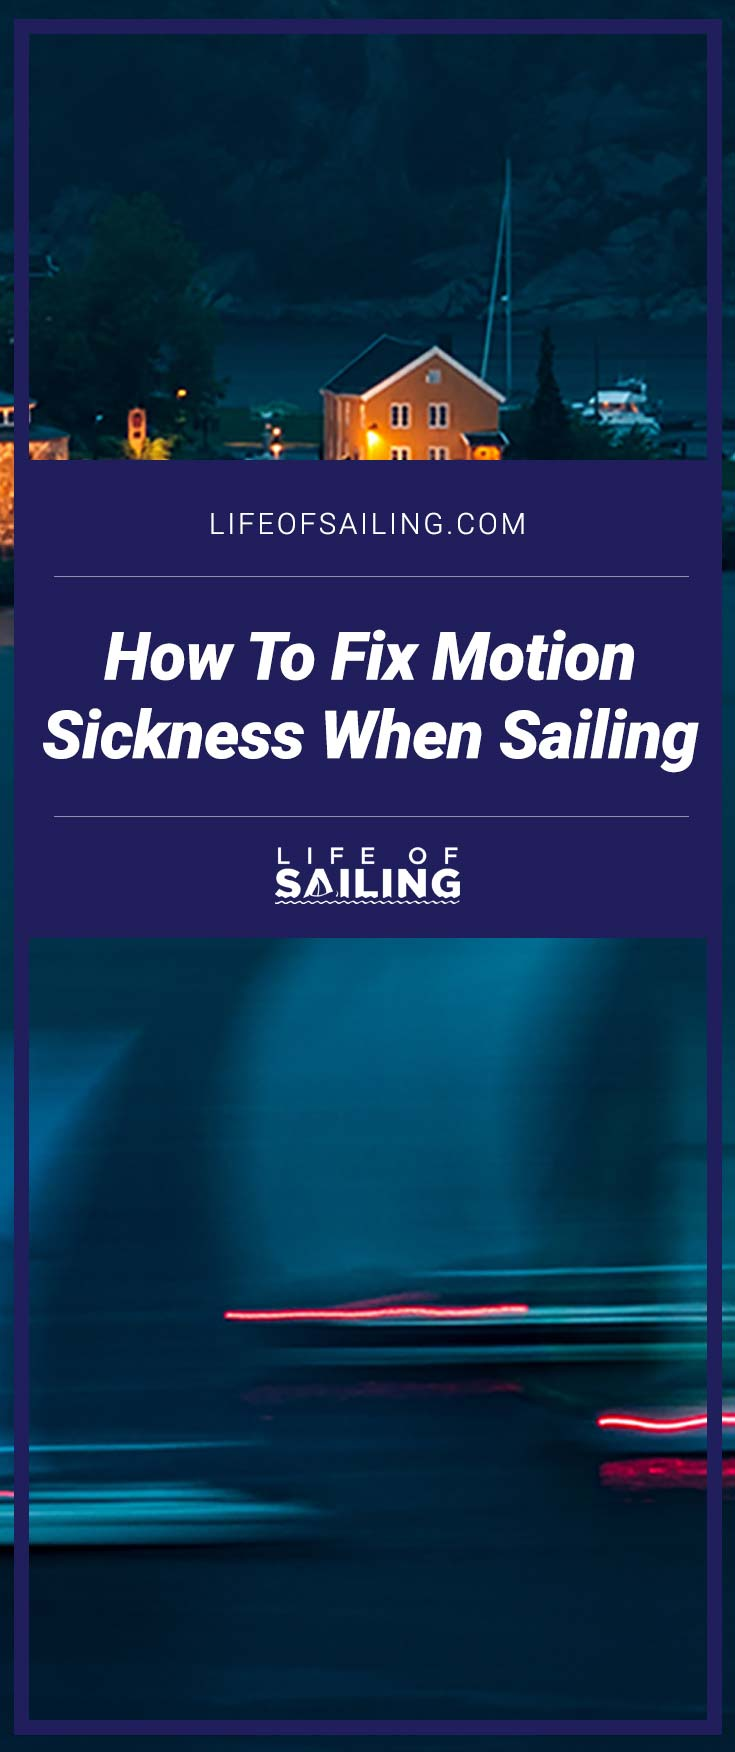 How To Fix Motion Sickness When Sailing